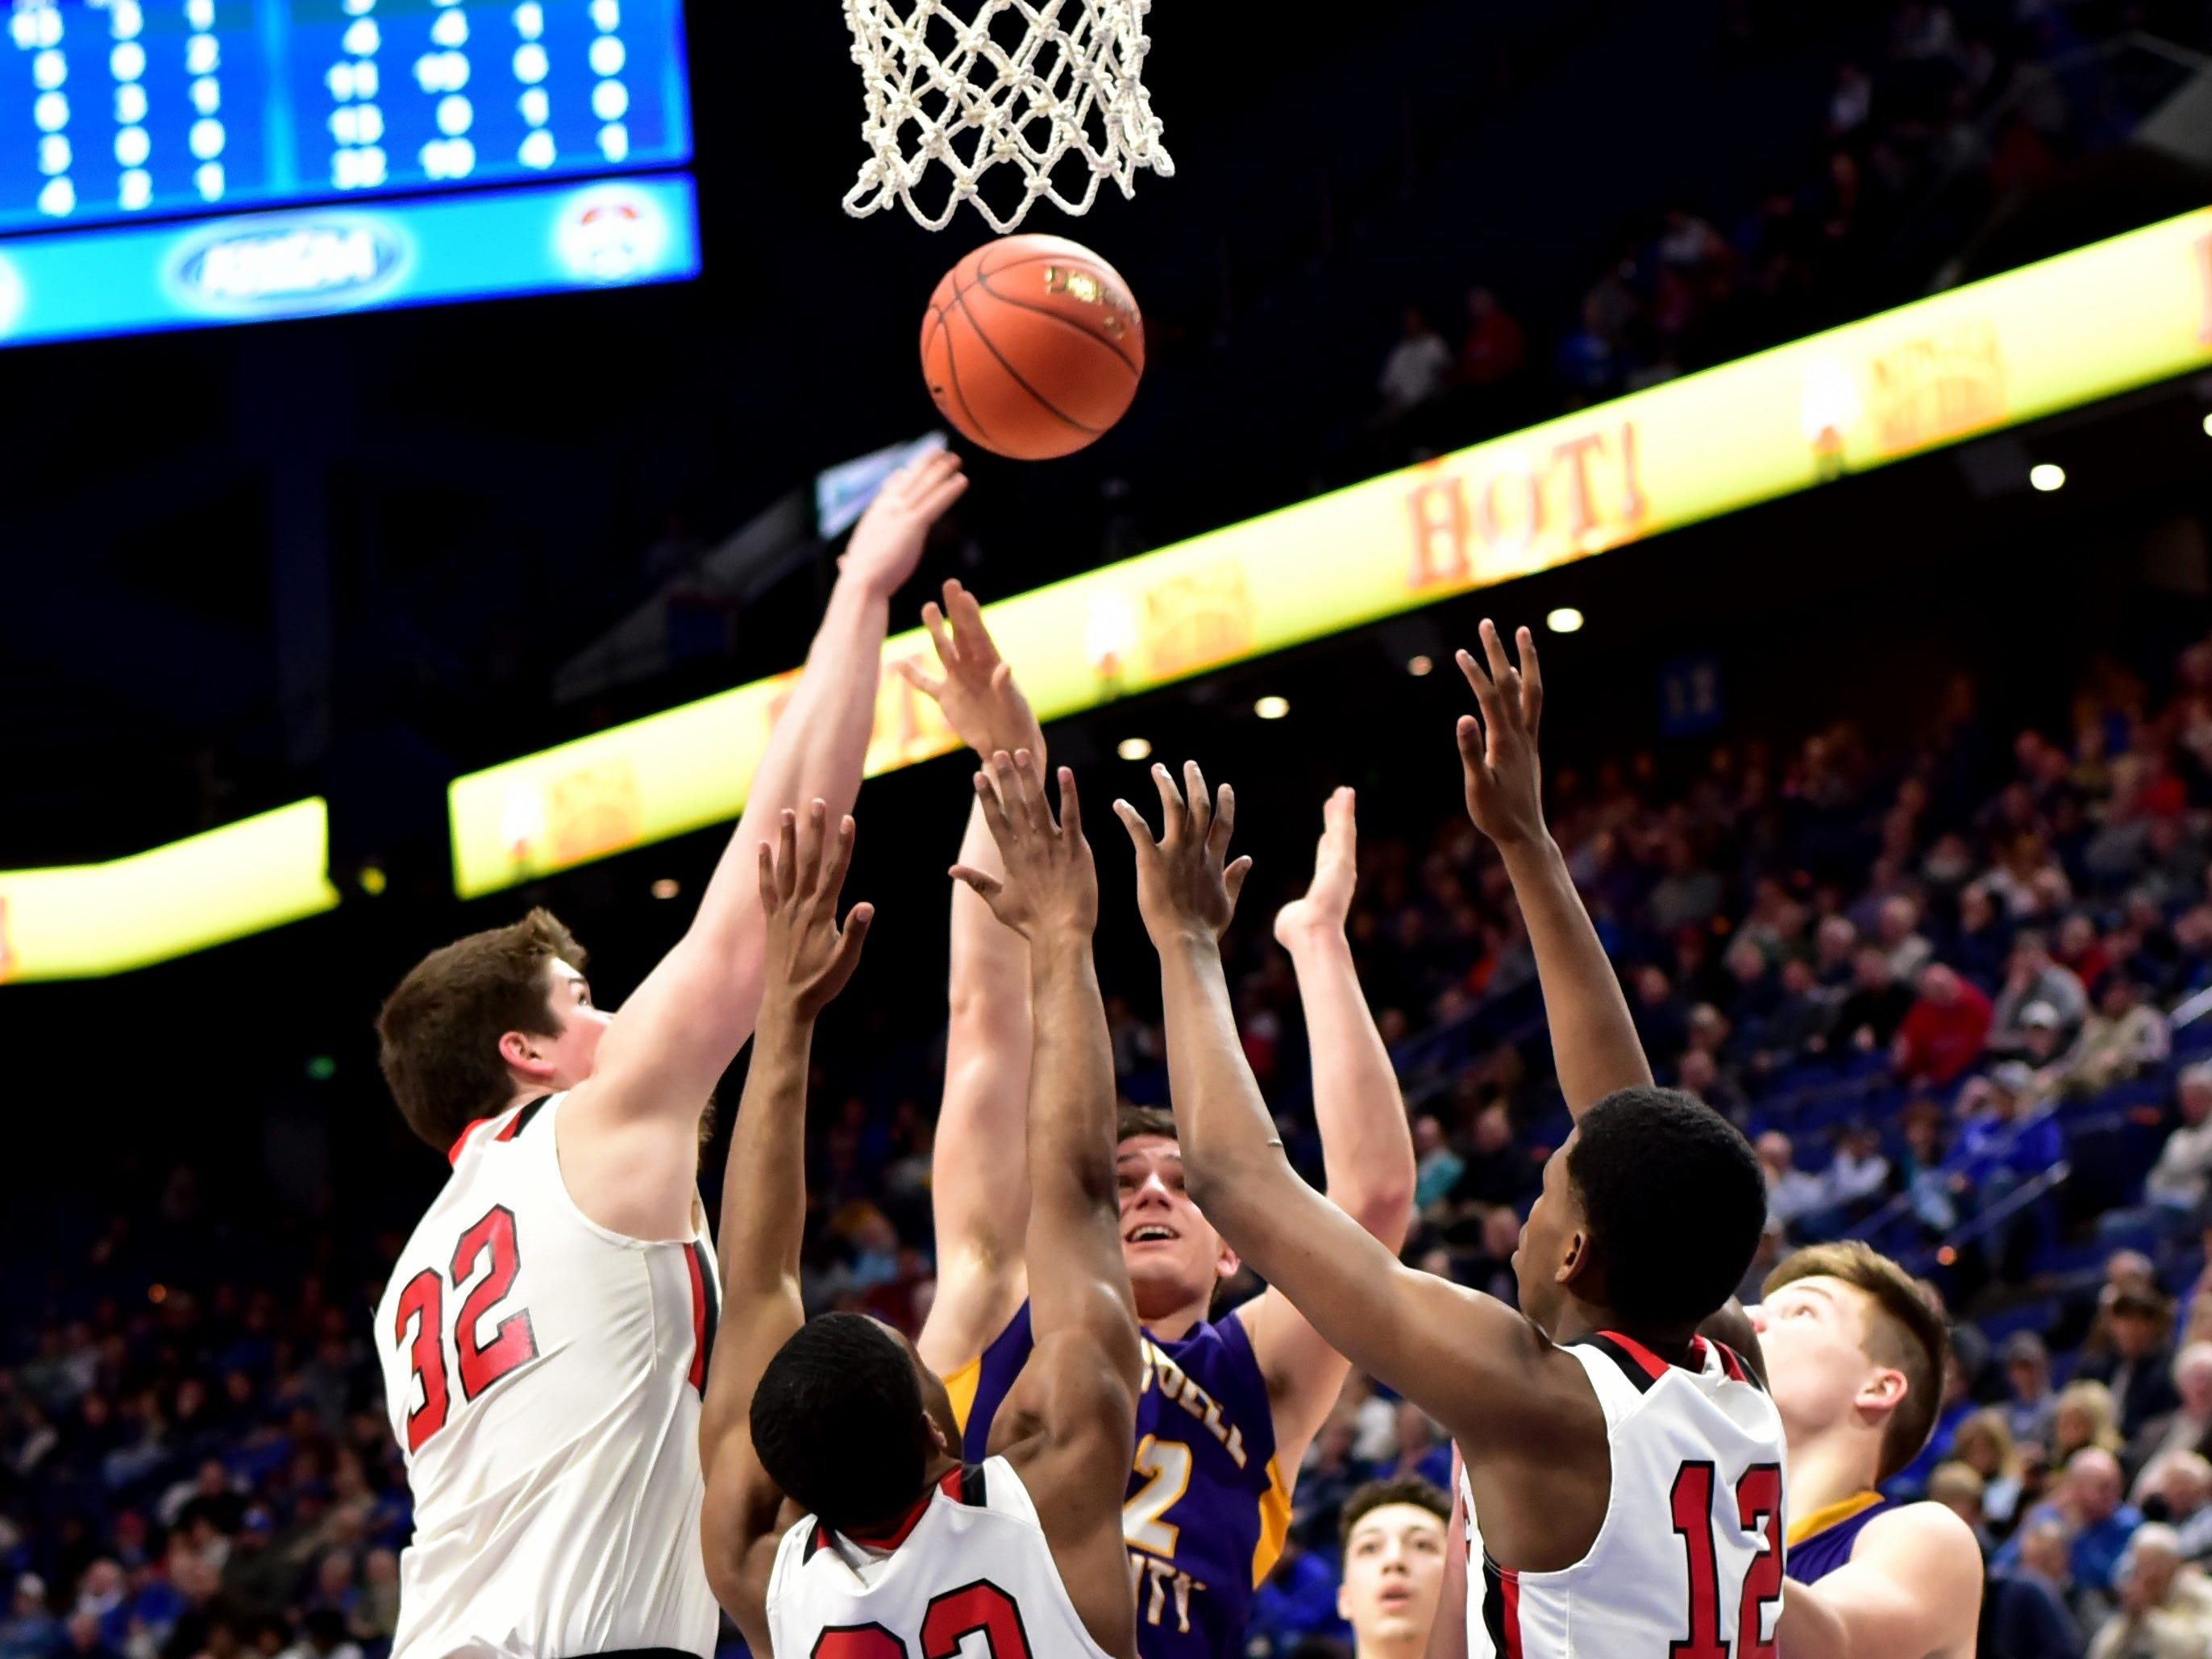 Campbell County's Tanner Lawrence (back) pushes up a short jump shot in the face of defensive traffic at the KHSAA Sweet 16 Tournament at Rupp Arena in Lexington, KY, March 6, 2019